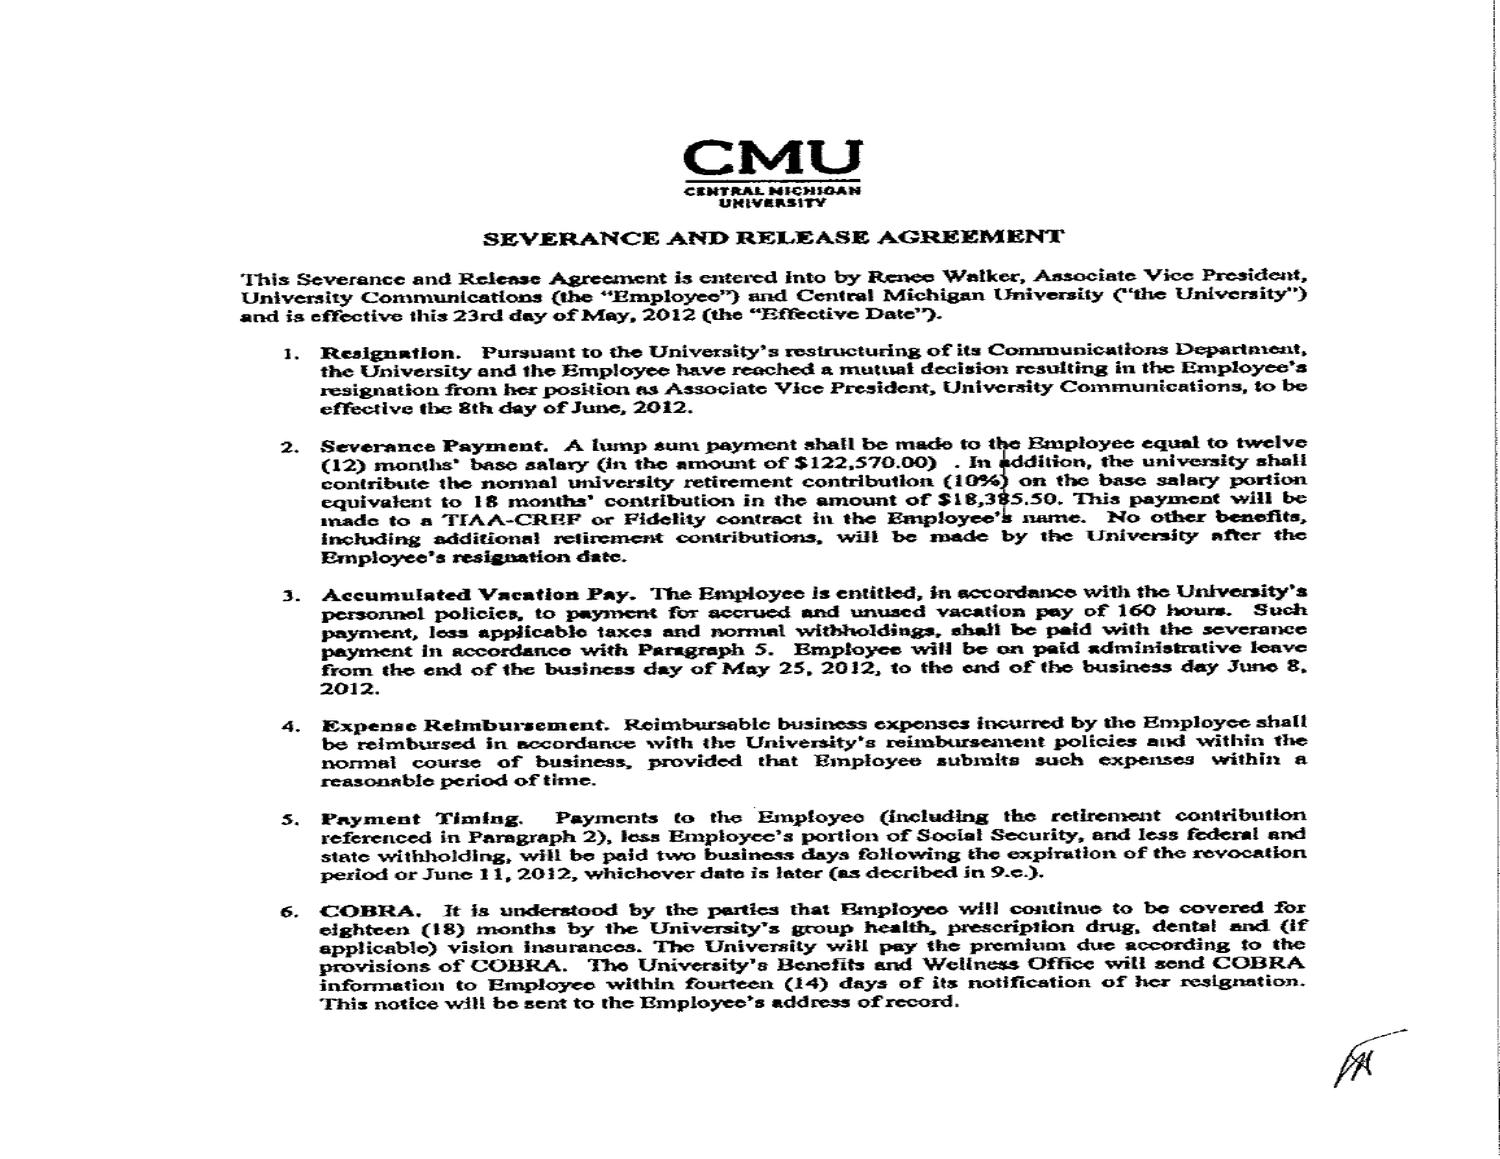 Renee Walker S Severance And Release Agreement By Cm Life Issuu